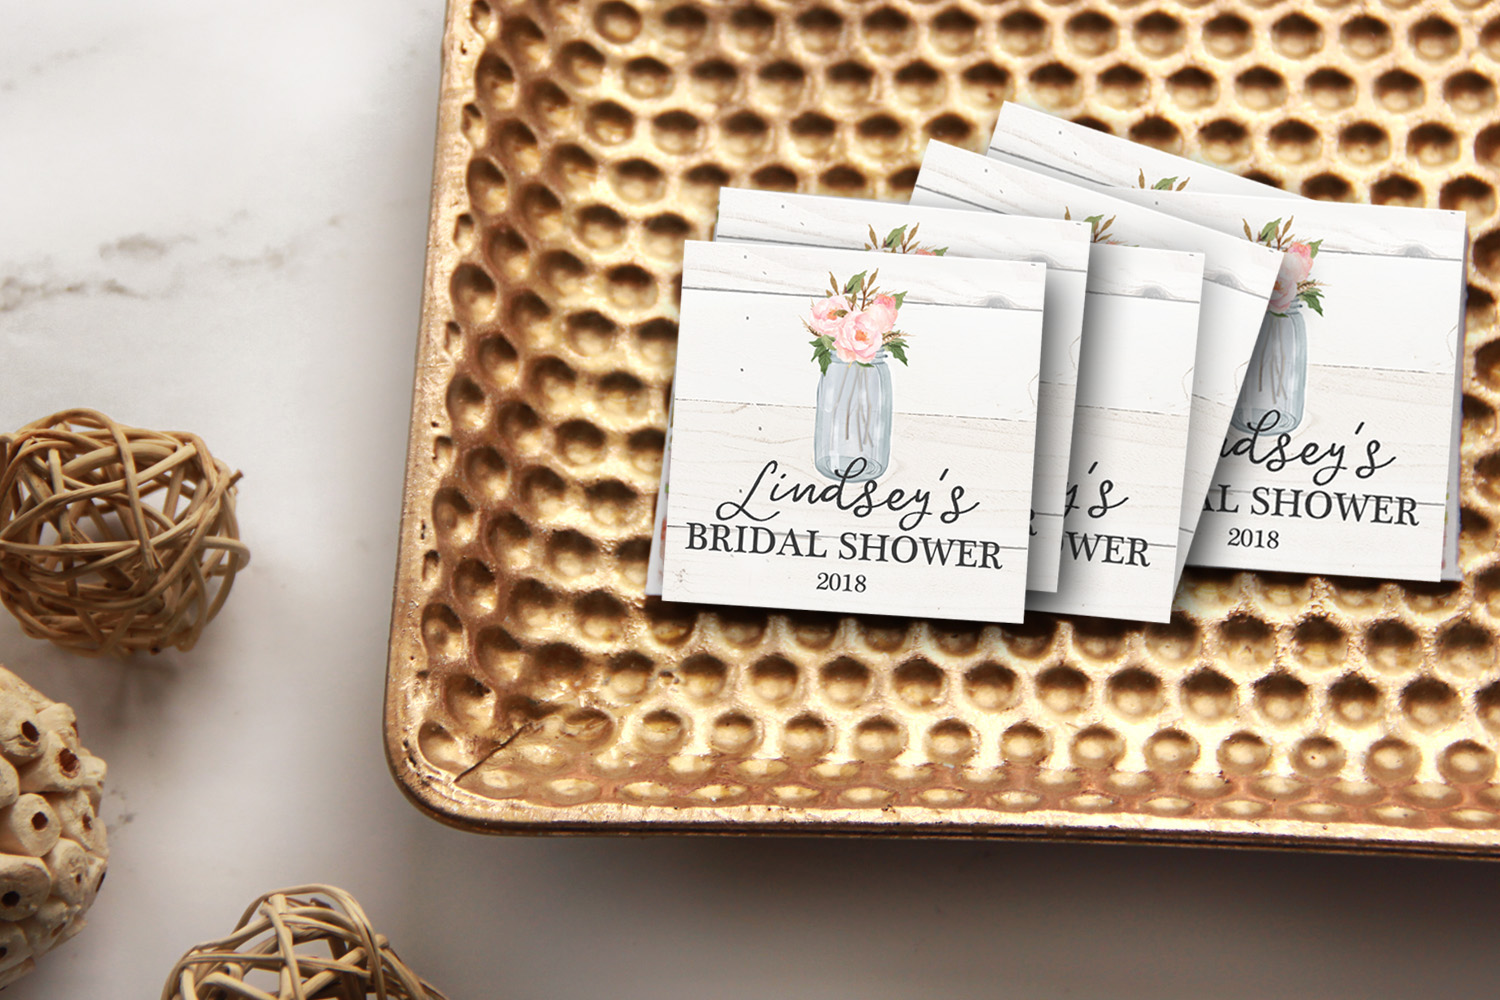 Farmhouse designs - Shop our collection of RUSTIC FARMHOUSE invitations and printables